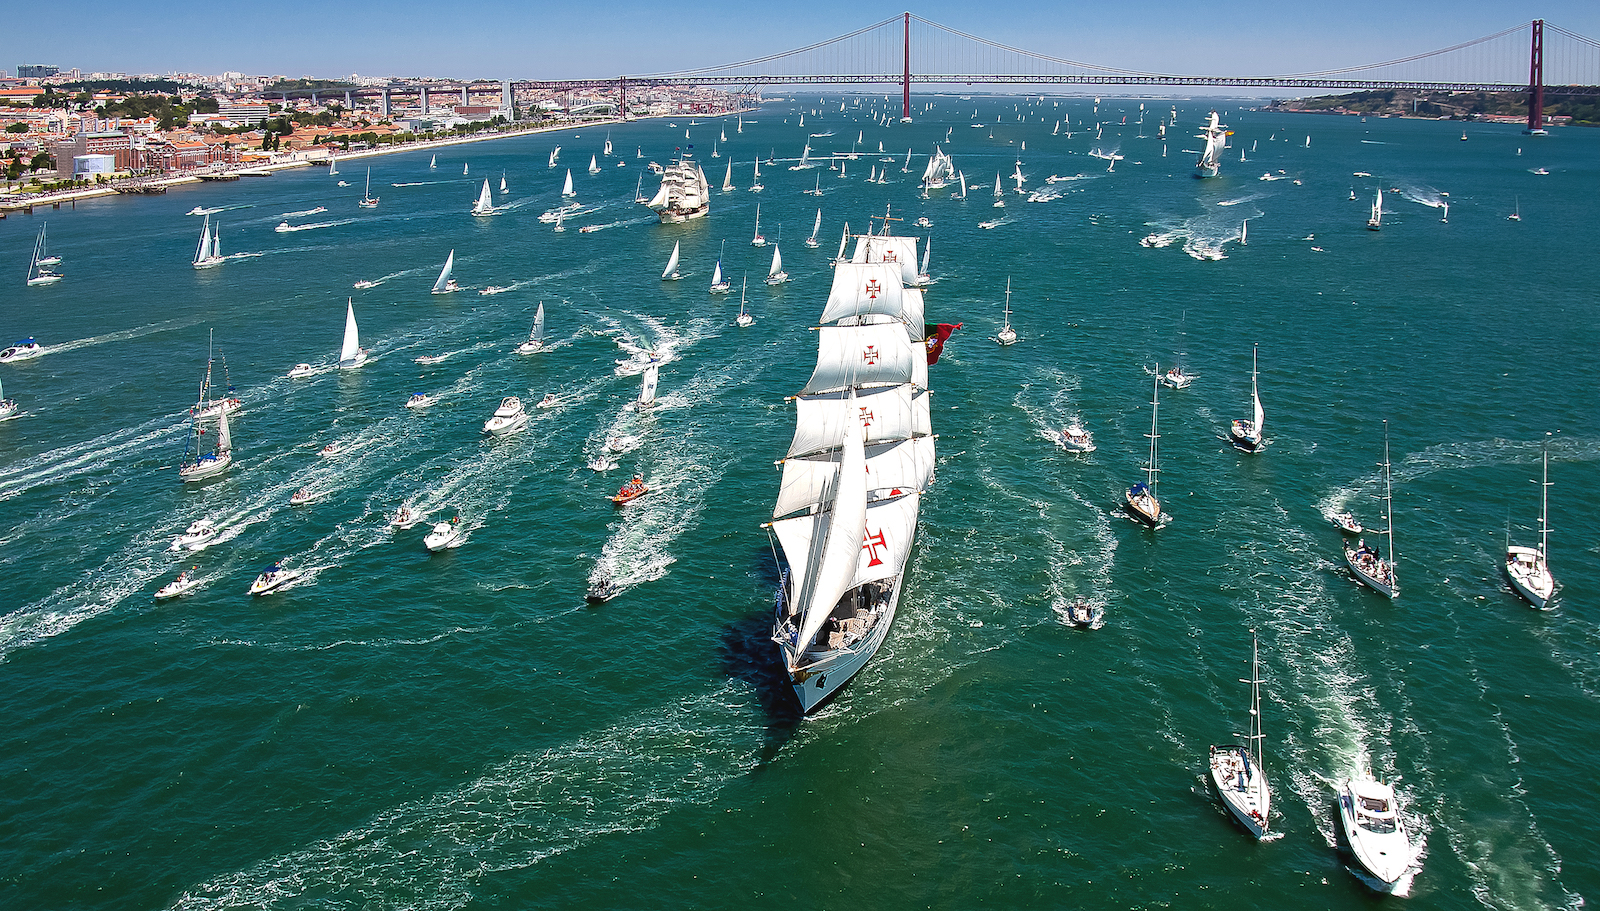 The Tall Ships Races in Portugal